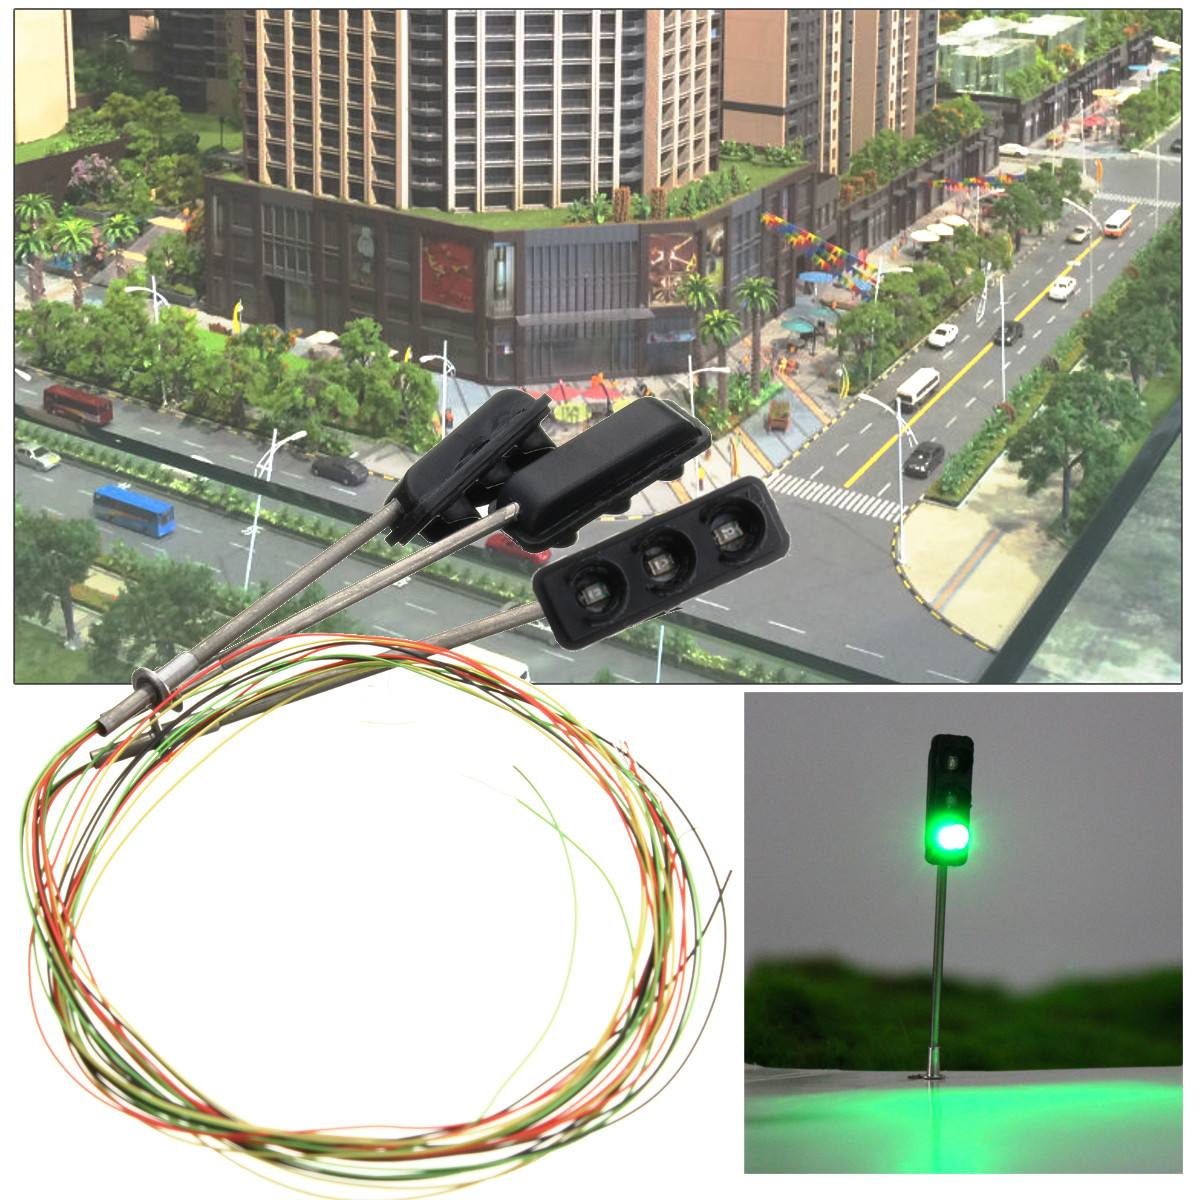 3Pcs Construction HO / OO Model 3-Light Traffic Lights Signal LED Circuit Model  50mm DIY For Architecture Street Train Railway